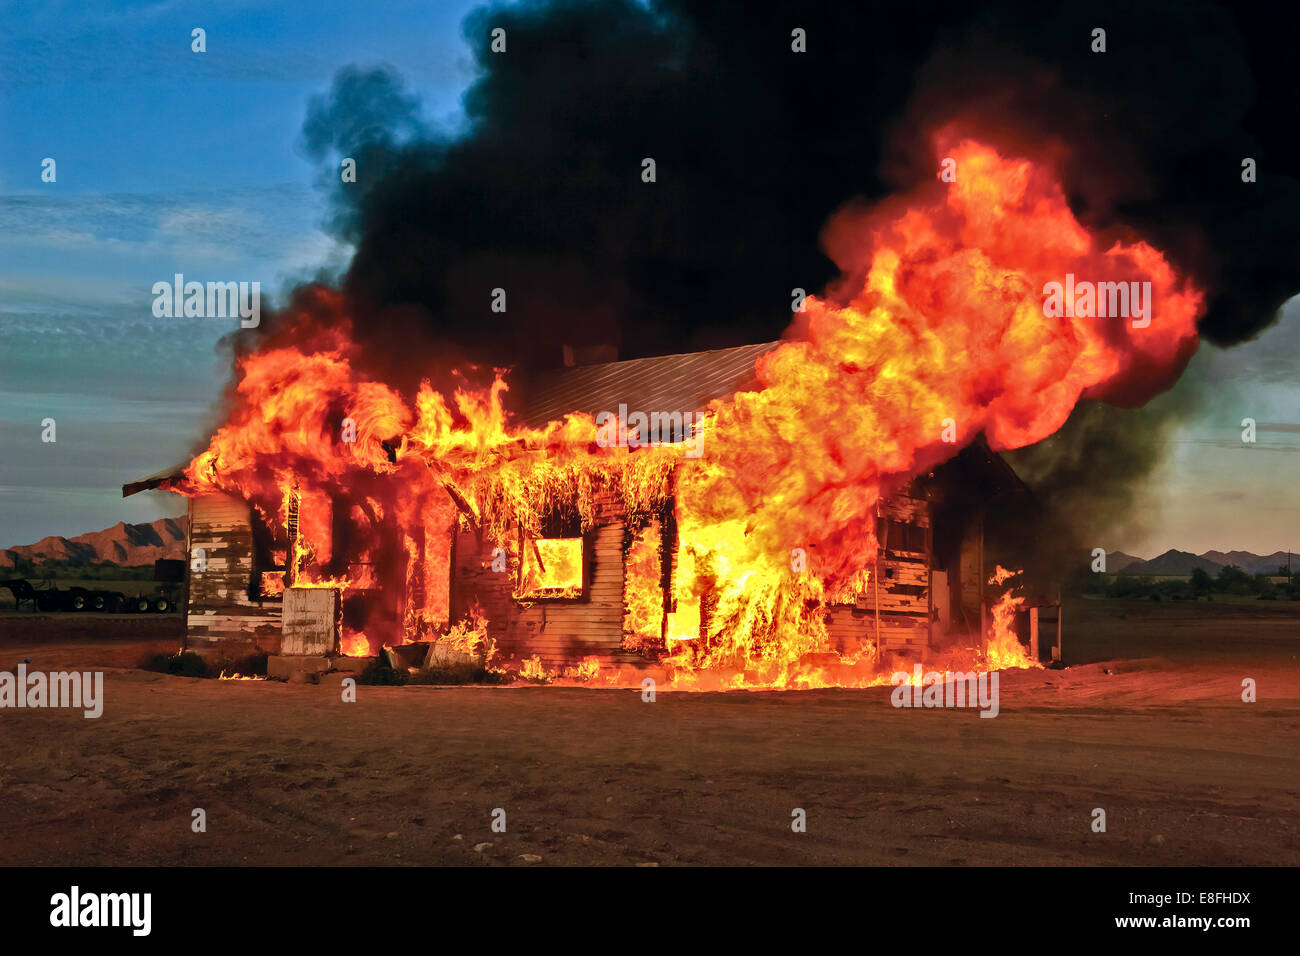 Abandoned house on fire, Gila Bend, Arizona, America, USA - Stock Image